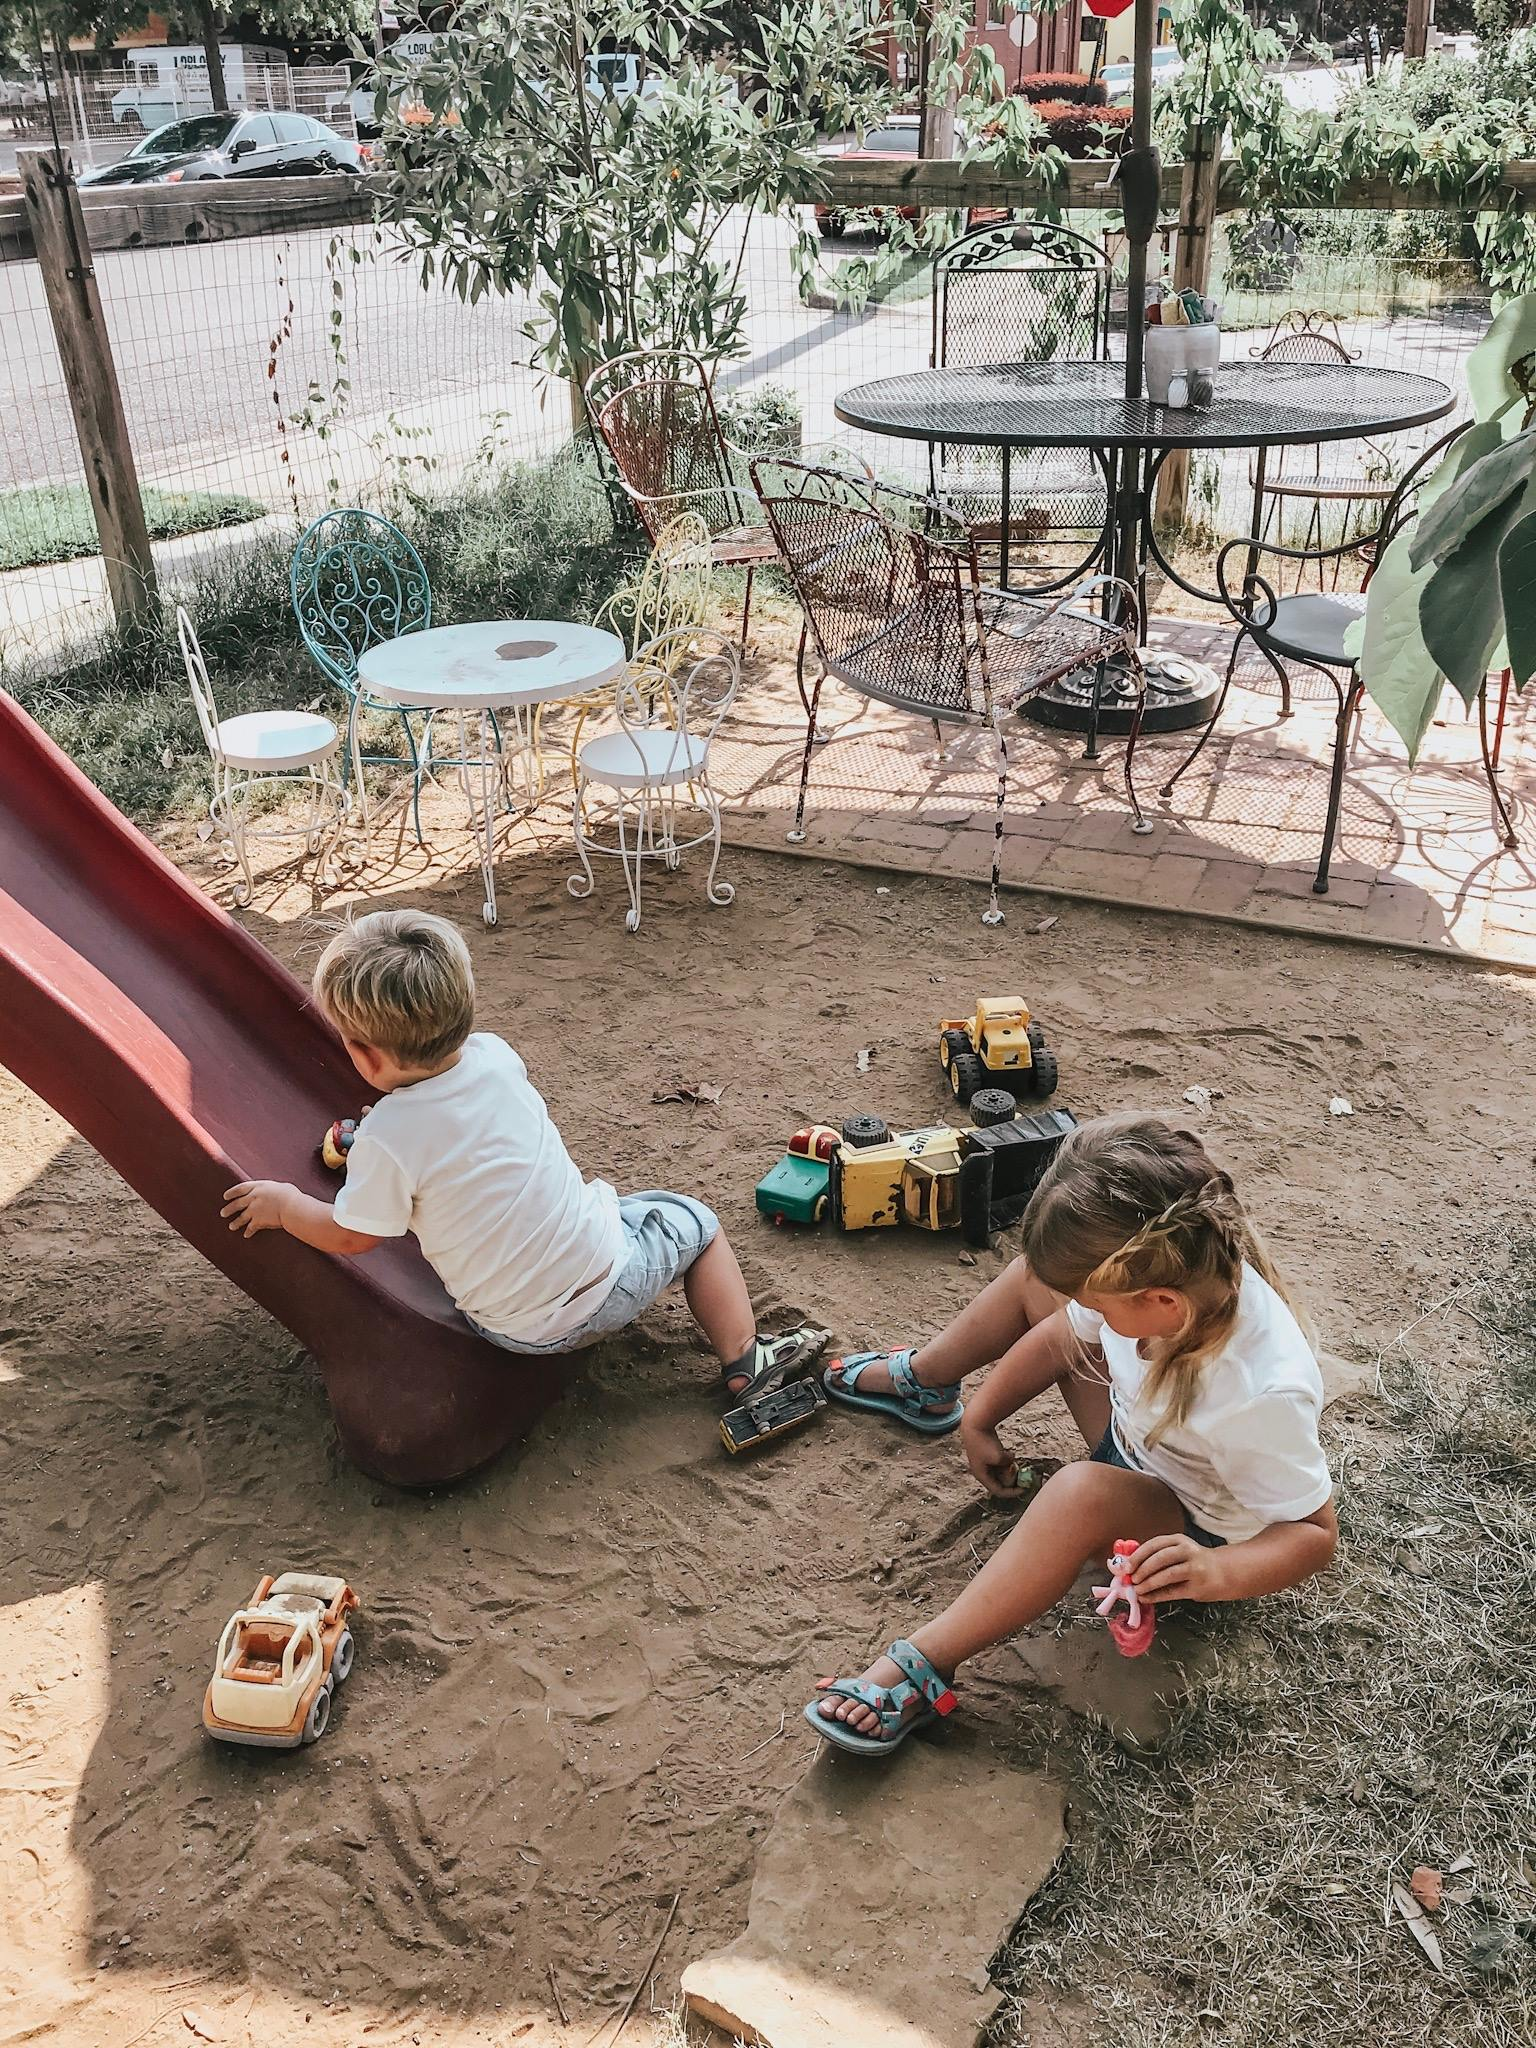 The root has this great playgroind with toys and delicious food!